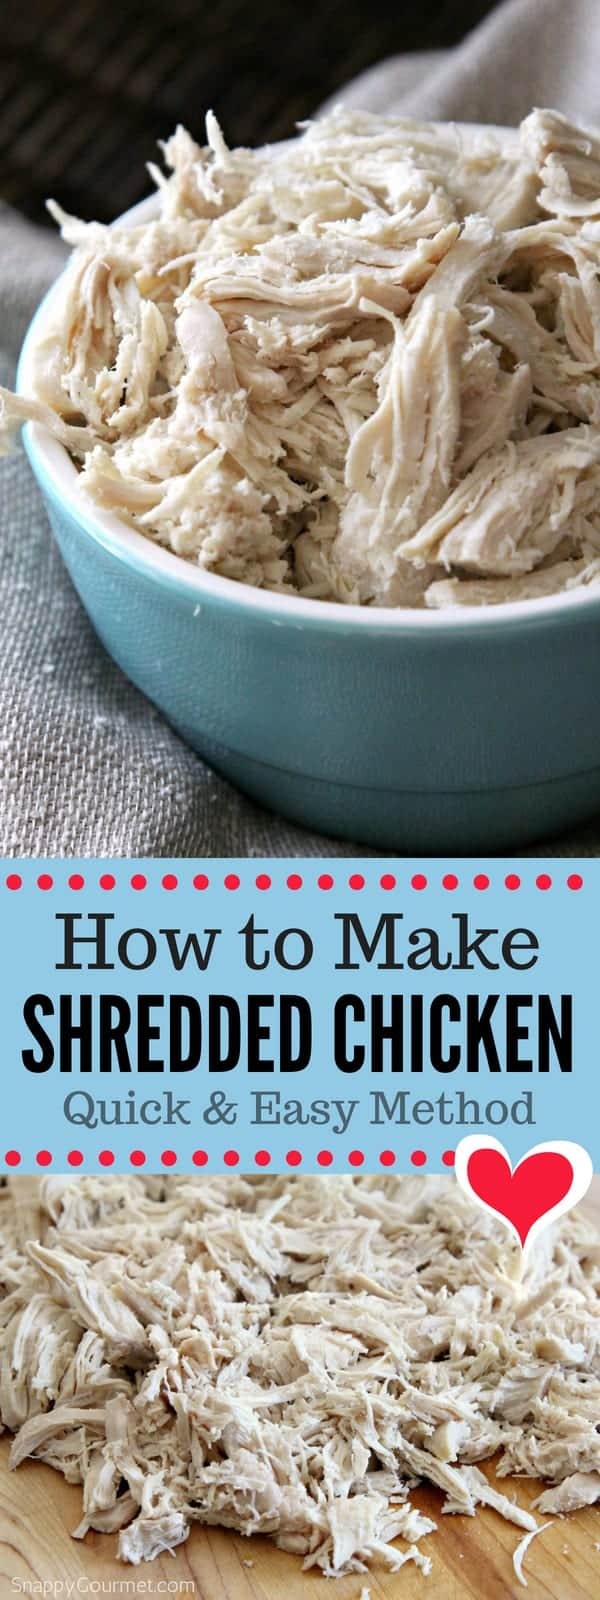 How to make shredded chicken - easy shredded chicken breast recipe